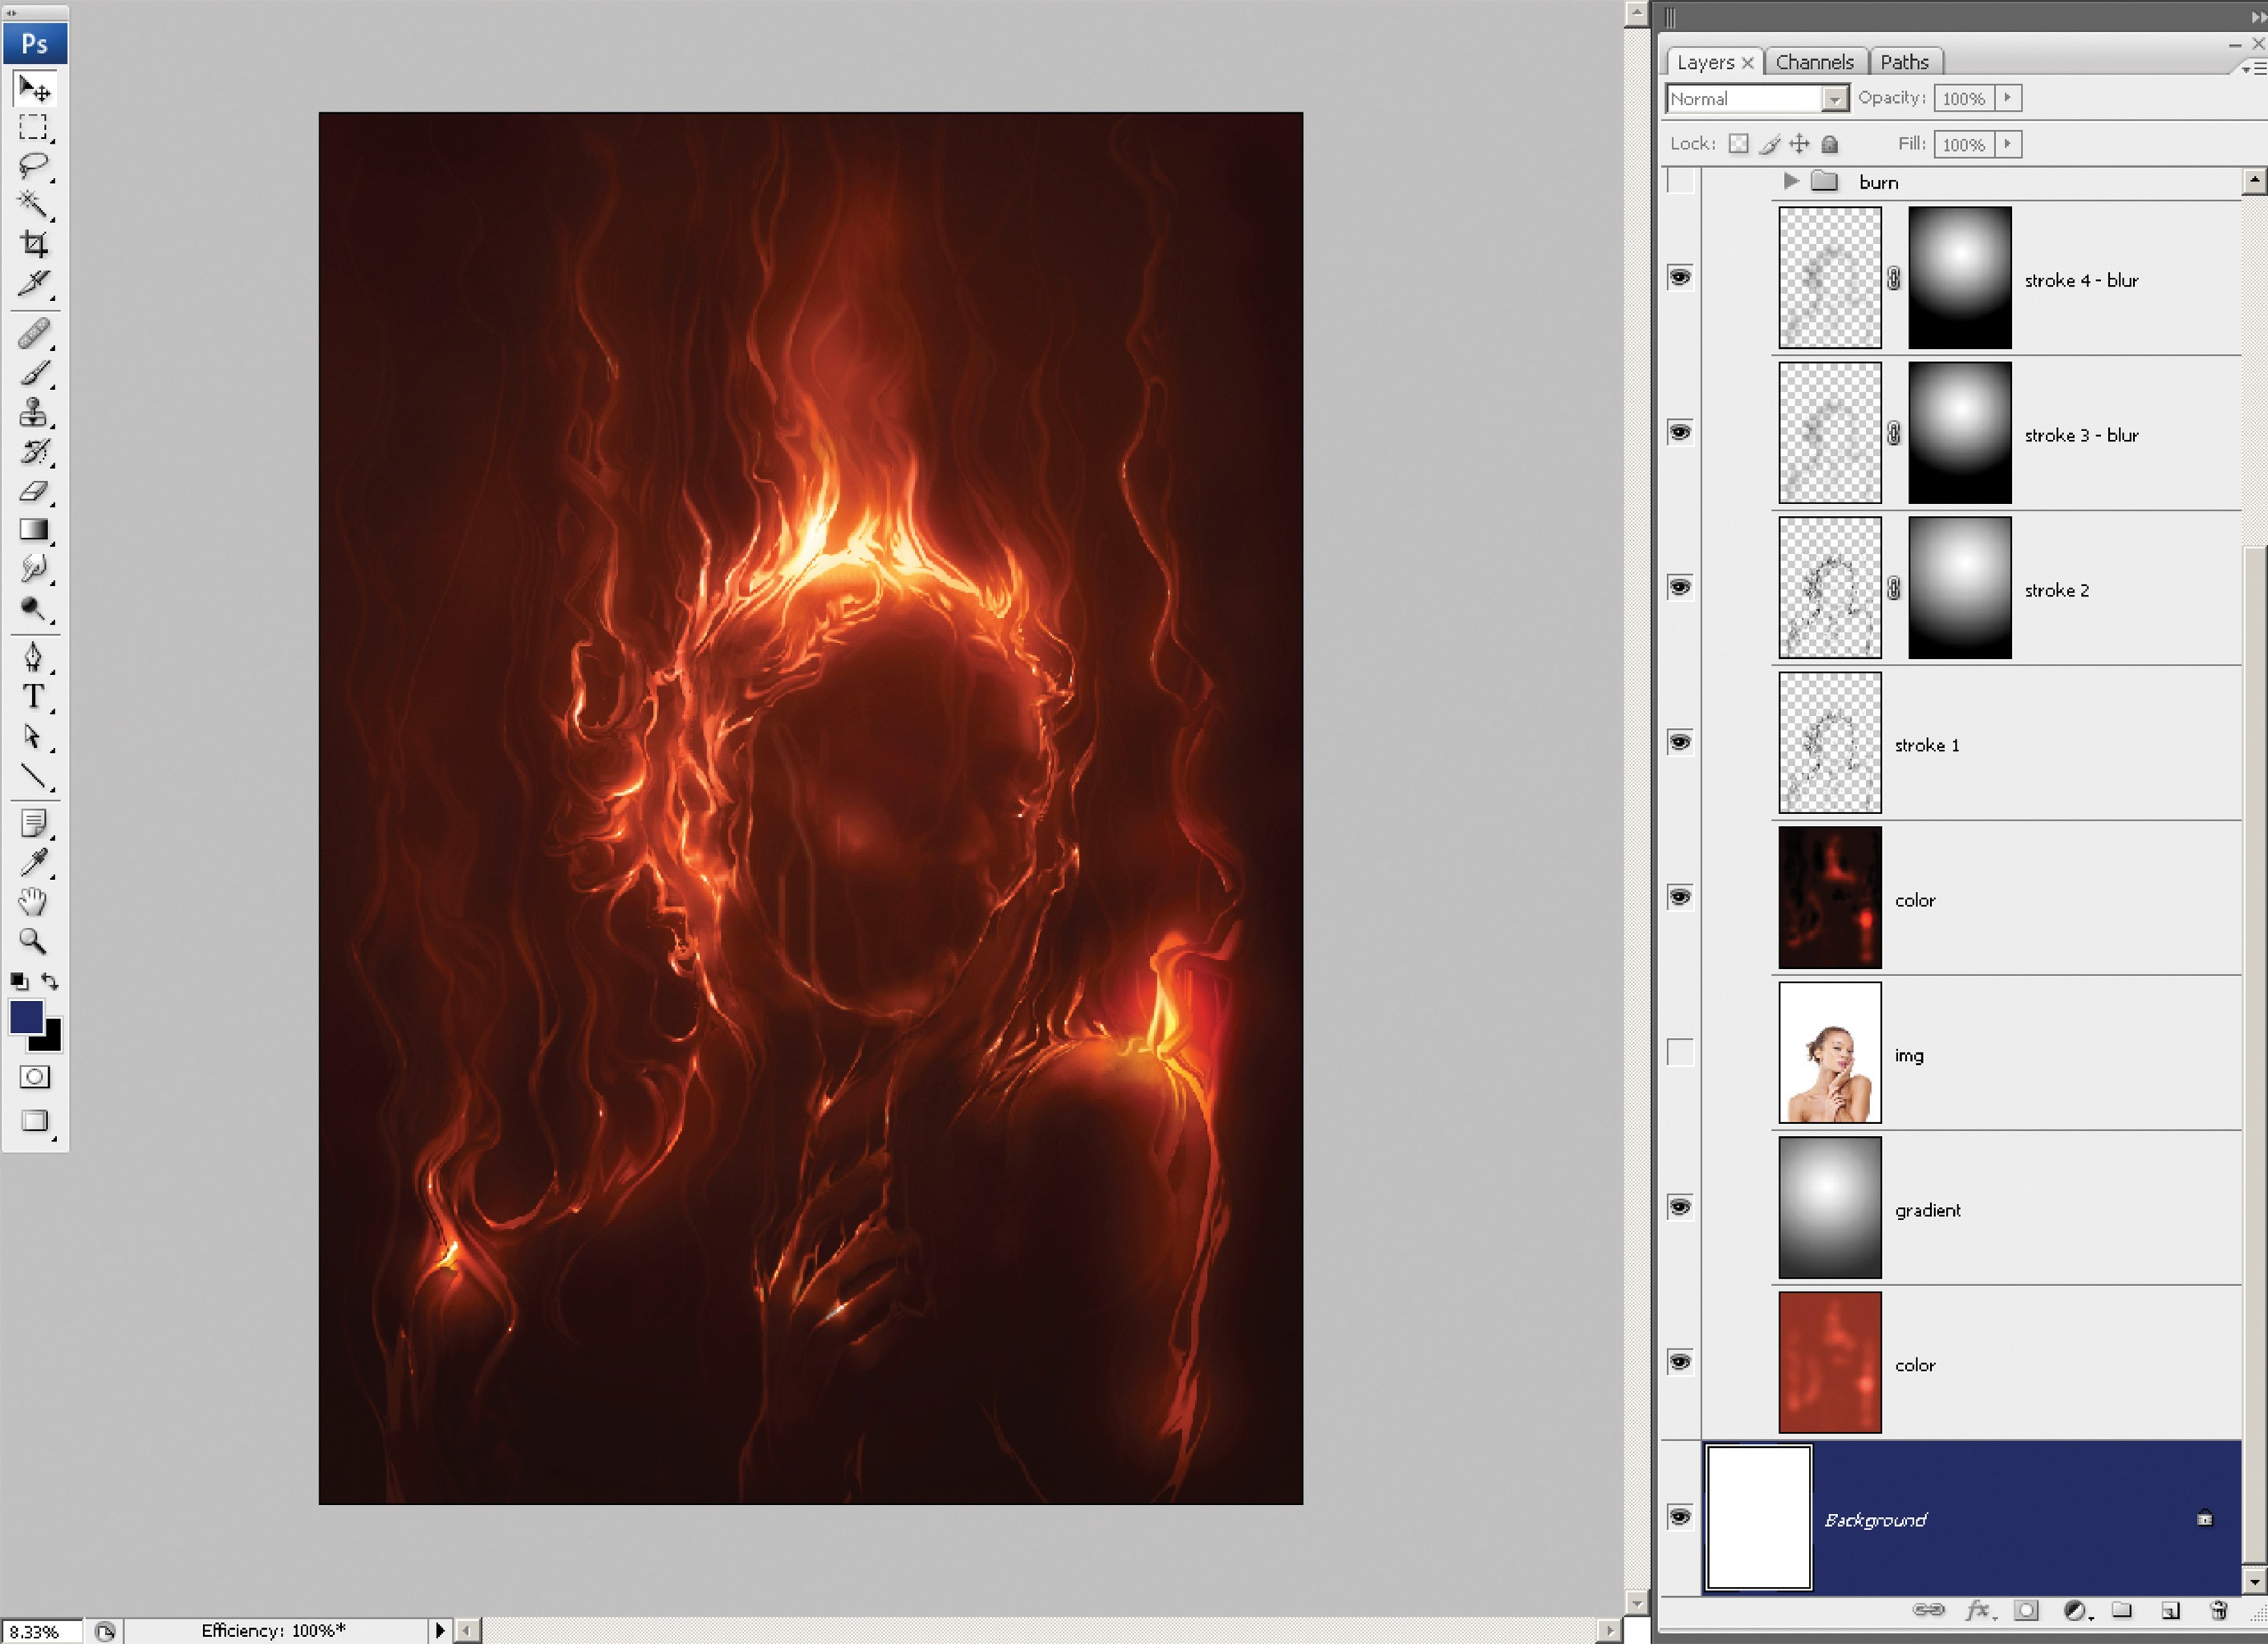 Photoshop tutorial: How to create fire in Photoshop - Digital Arts